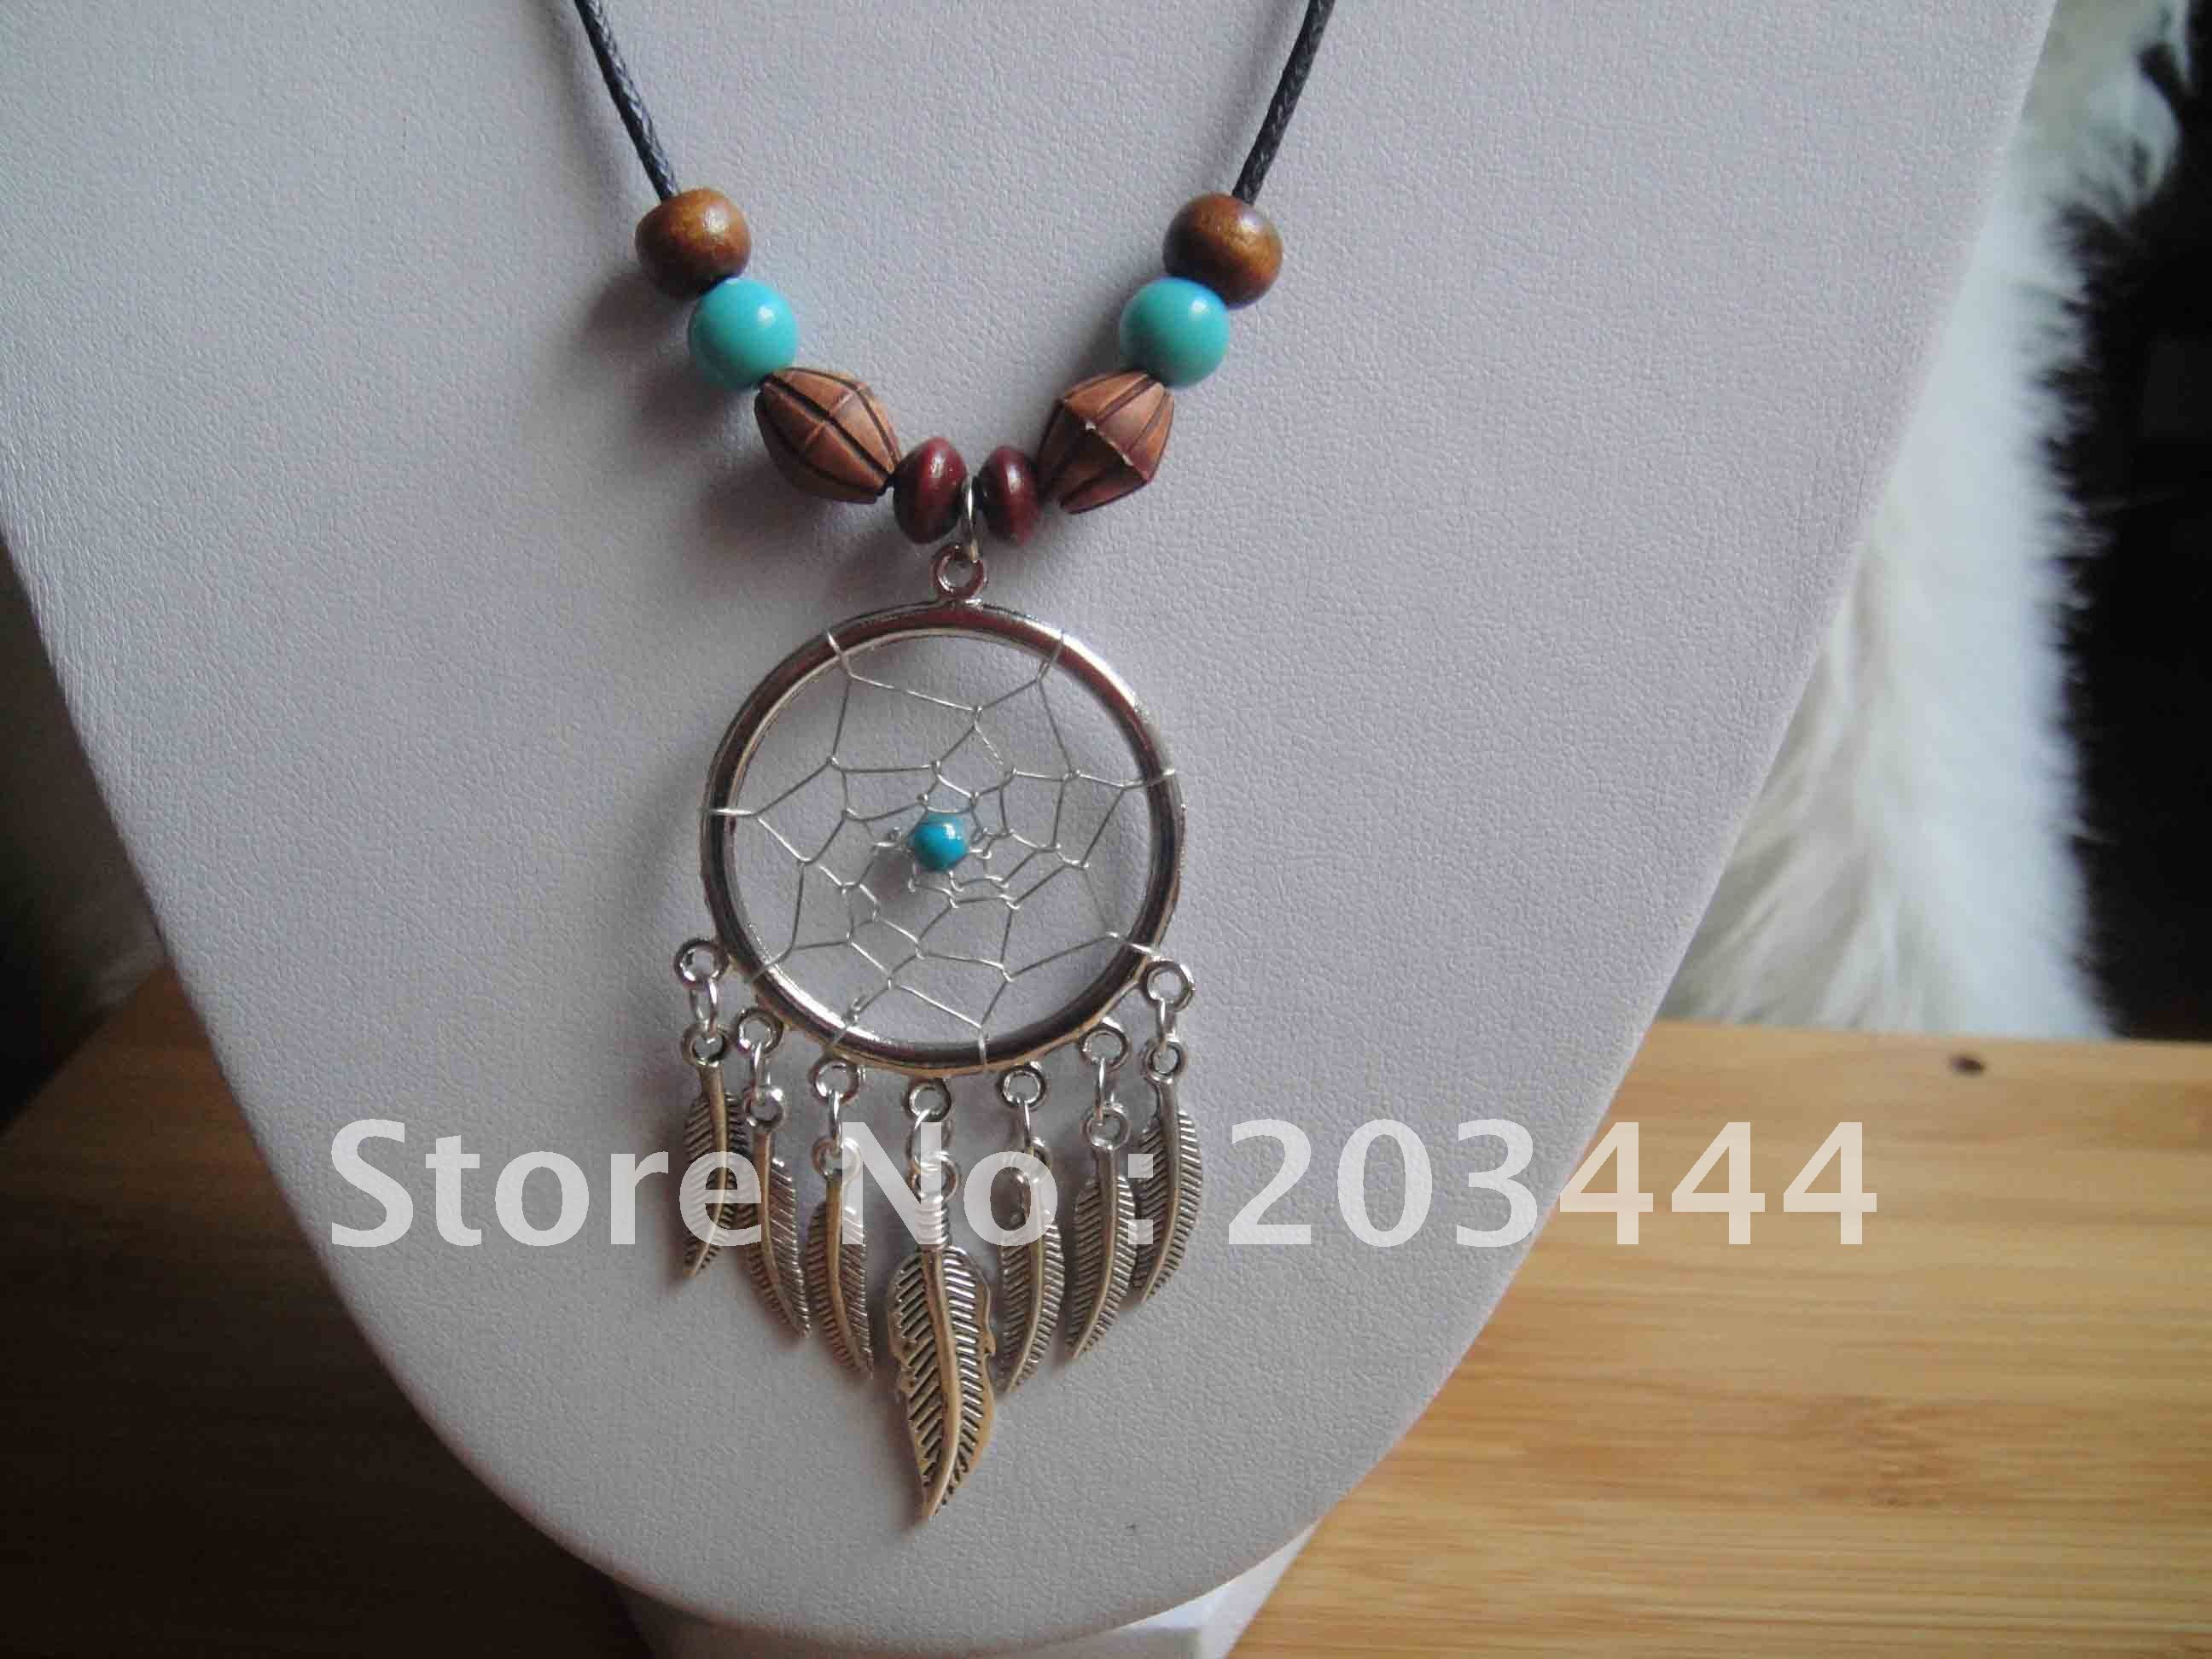 free shipping hot sale dream catcher necklace 3.5cm-in Crafts from Home & Garden on Aliexpress.com